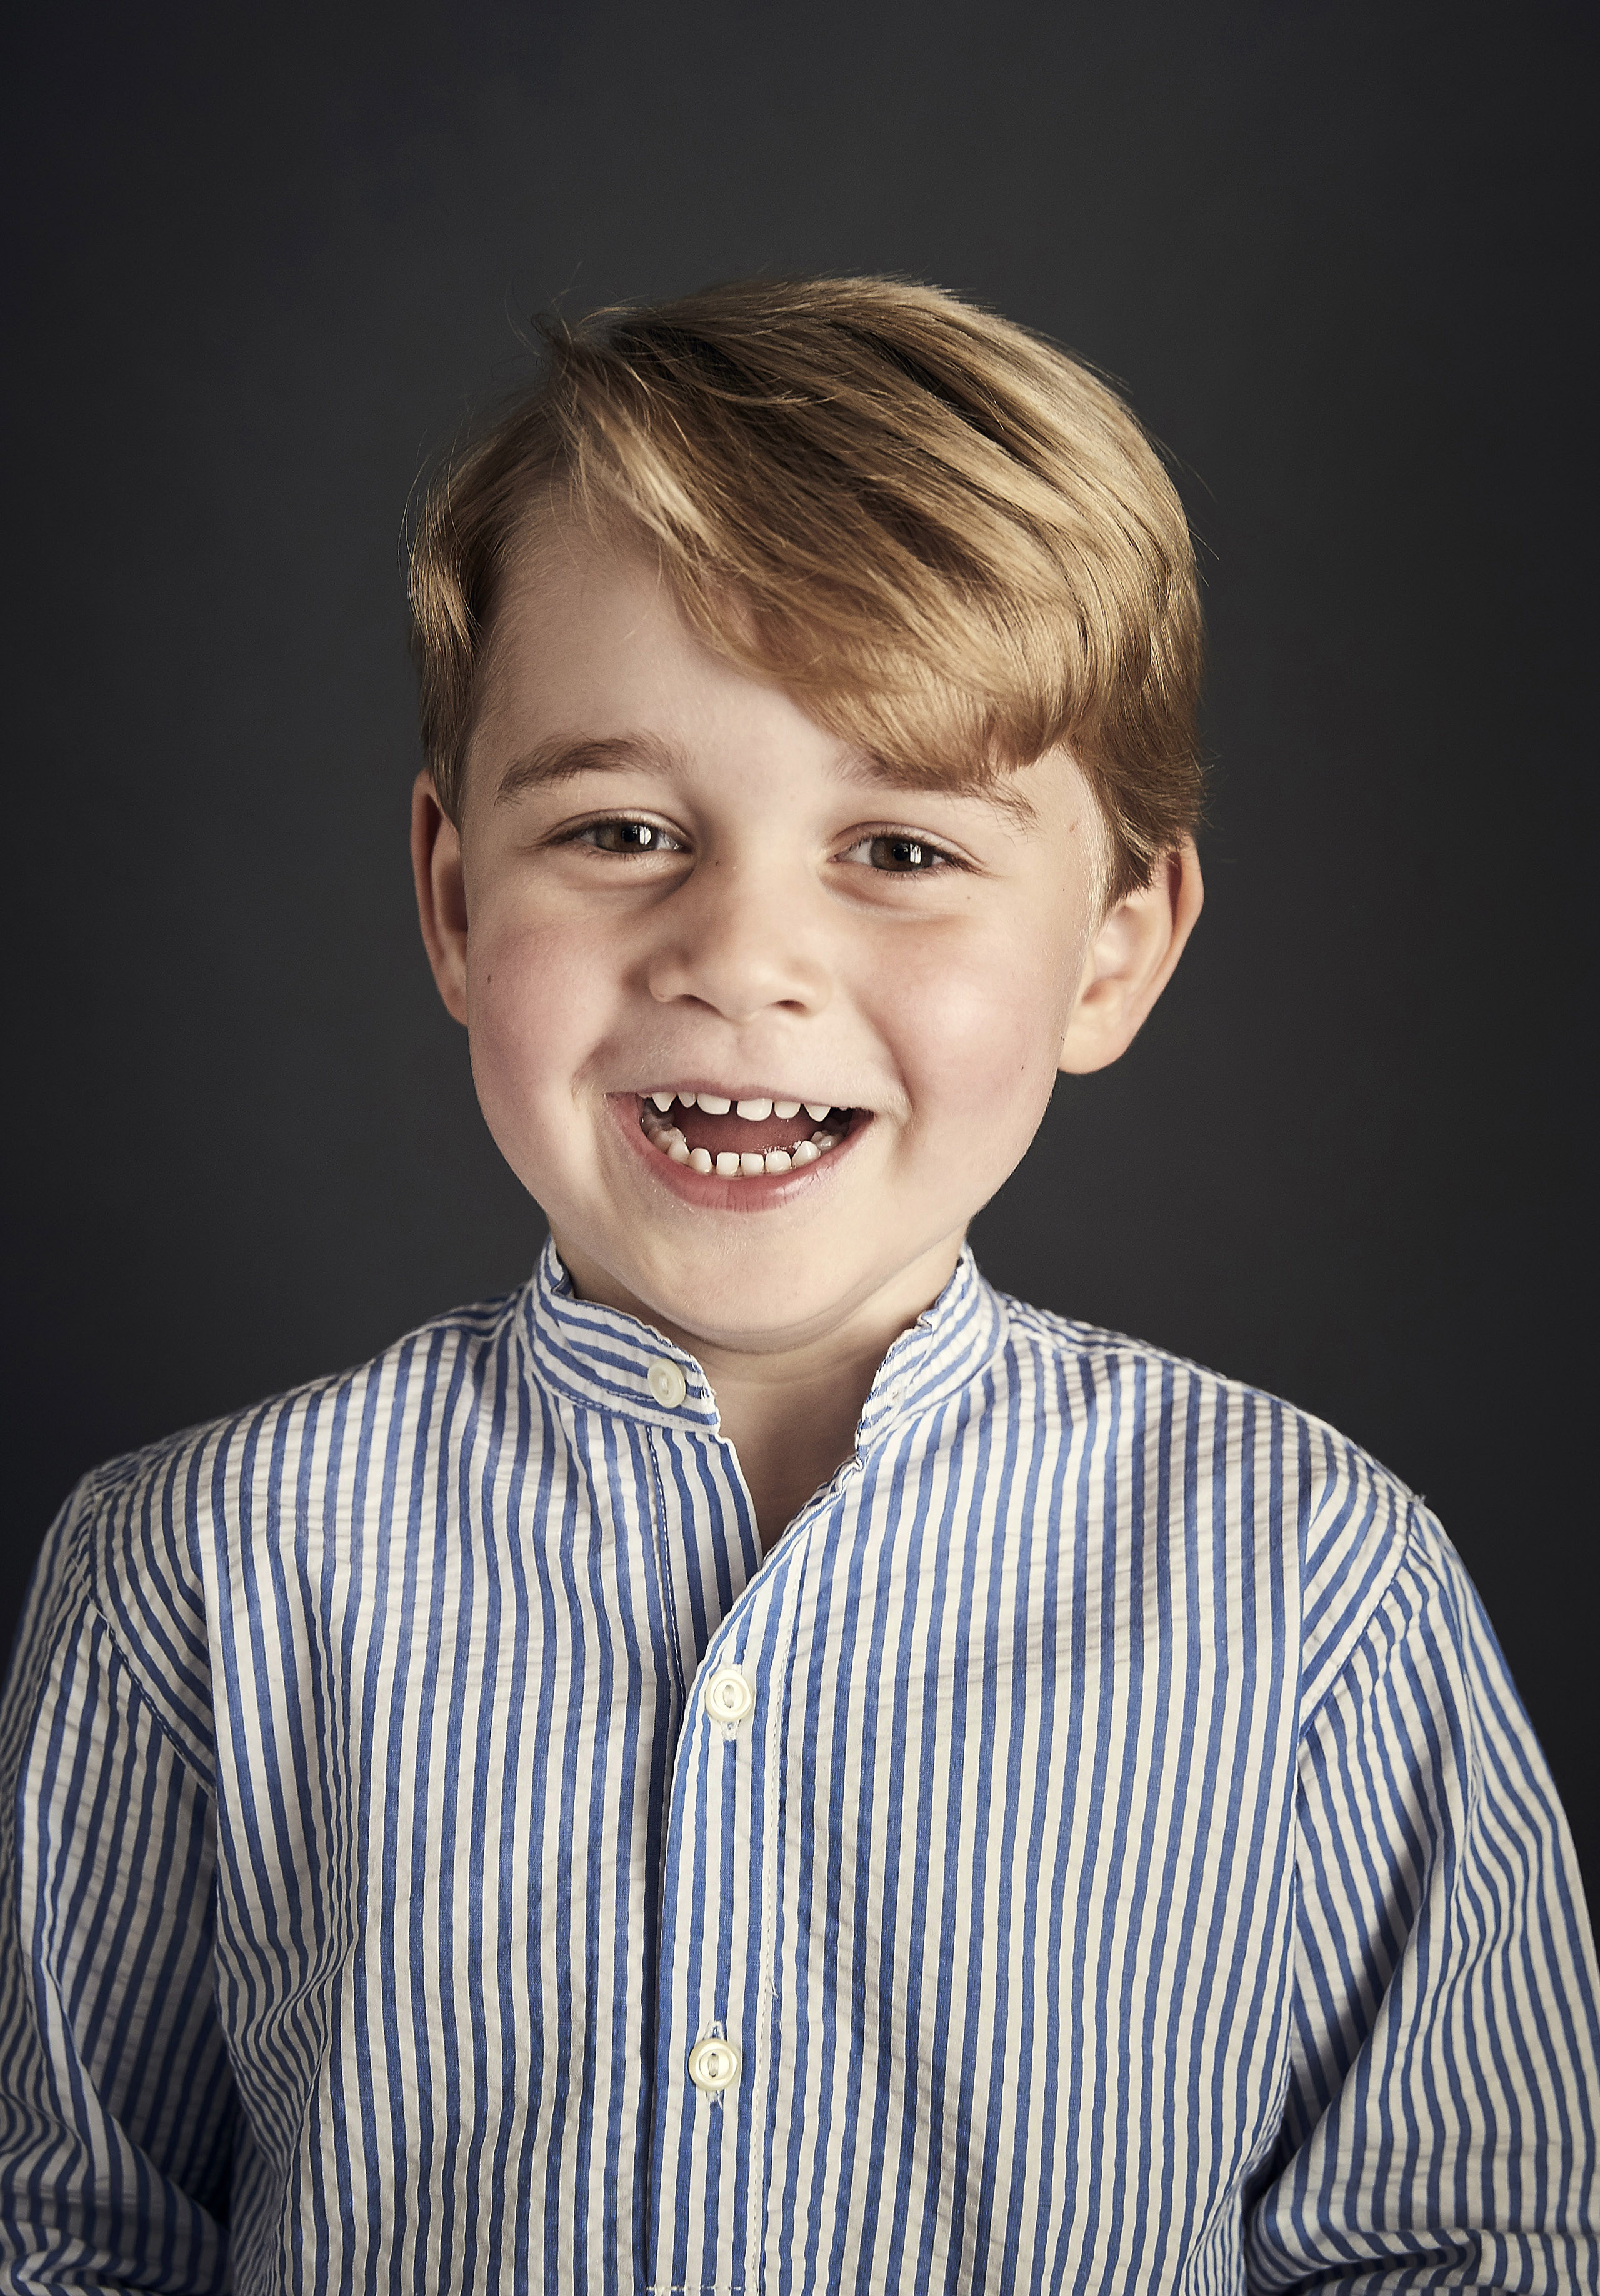 This undated photo has been released by the Duke and Duchess of Cambridge of Prince George, who celebrates his fourth birthday on Saturday. The picture was taken at Kensington Palace in London at the end of June.